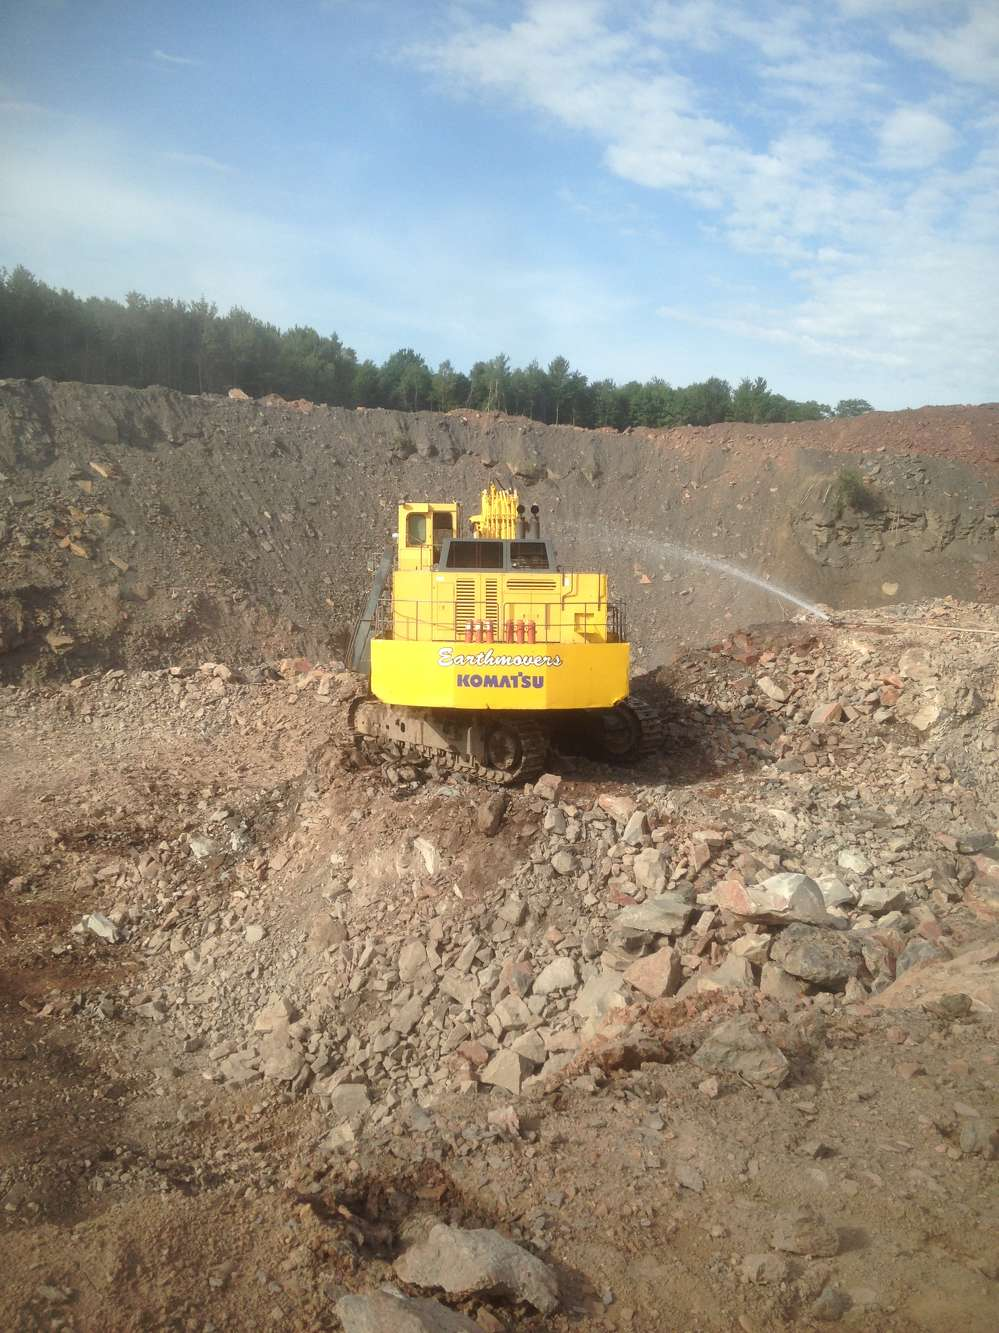 Earthmovers Unlimited Inc. photo. Earthmovers has the responsibility of moving well over 200,000 bank cu. yds. (152,910 cu m) per month for the duration of the approximate three-year project.